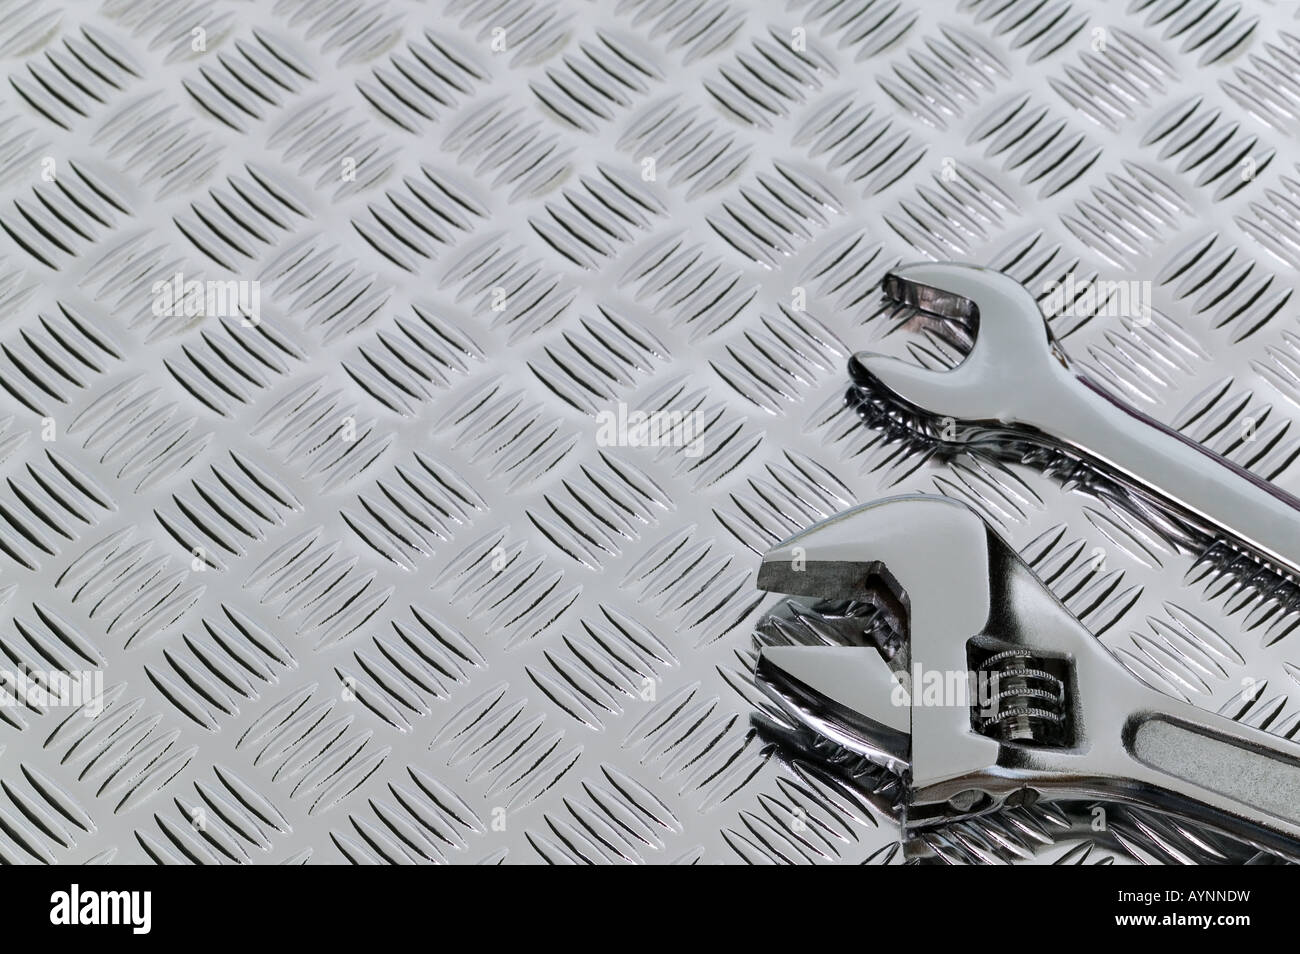 Mechanical image of two spanners on a checkerplate background - Stock Image